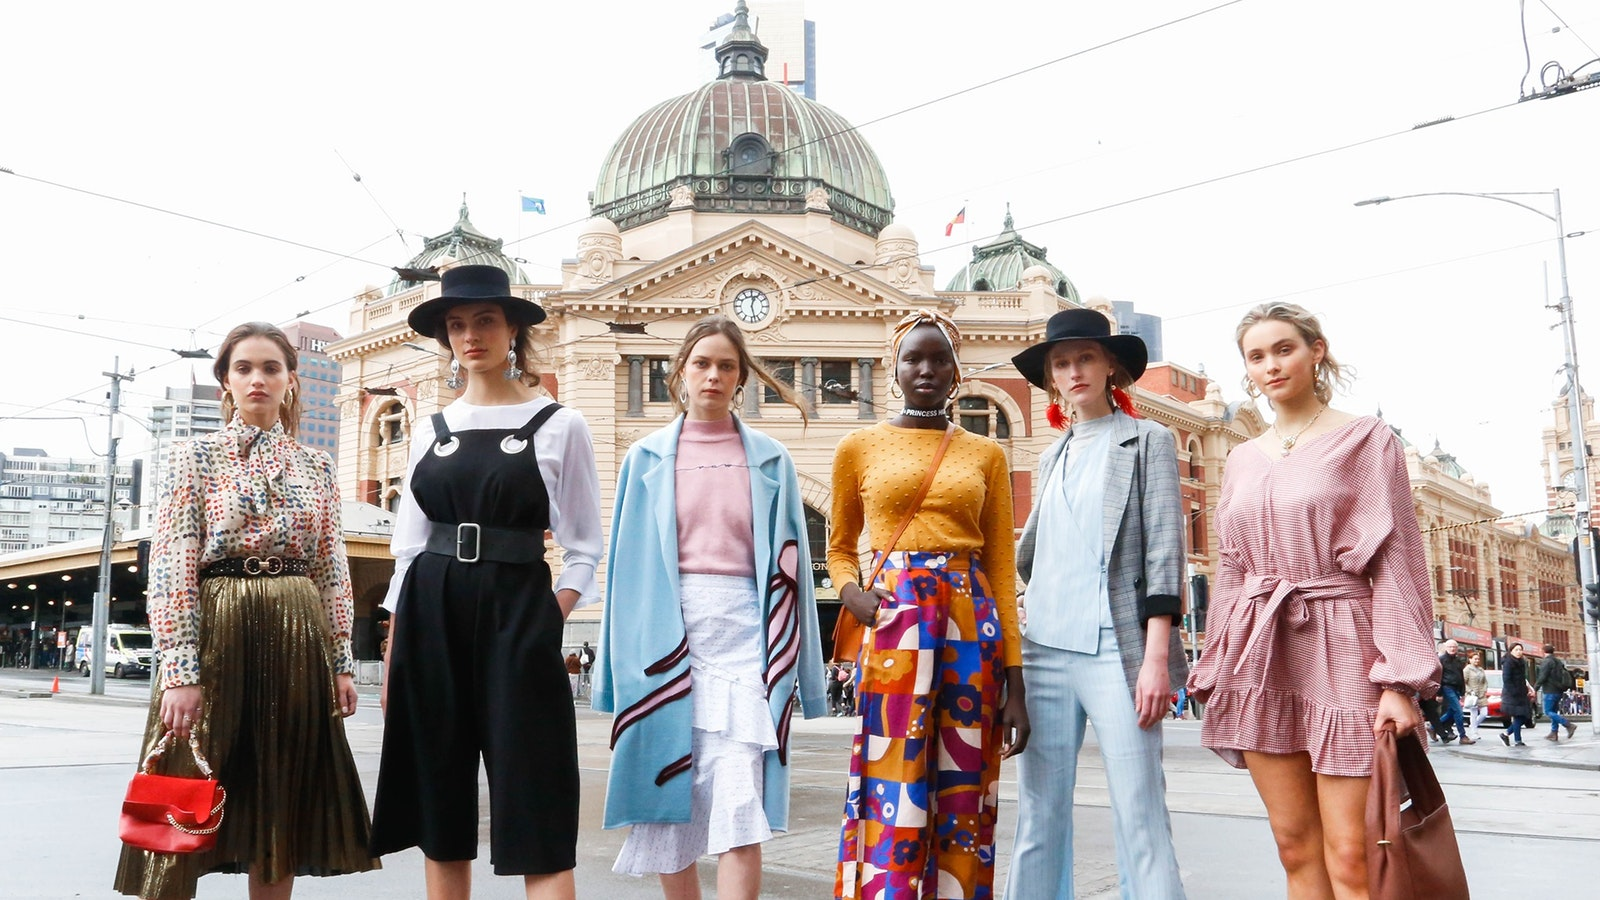 MELBOURNE FASHION WEEK TAKES OVER THE CITY WITH MORE THAN 150 EVENTS